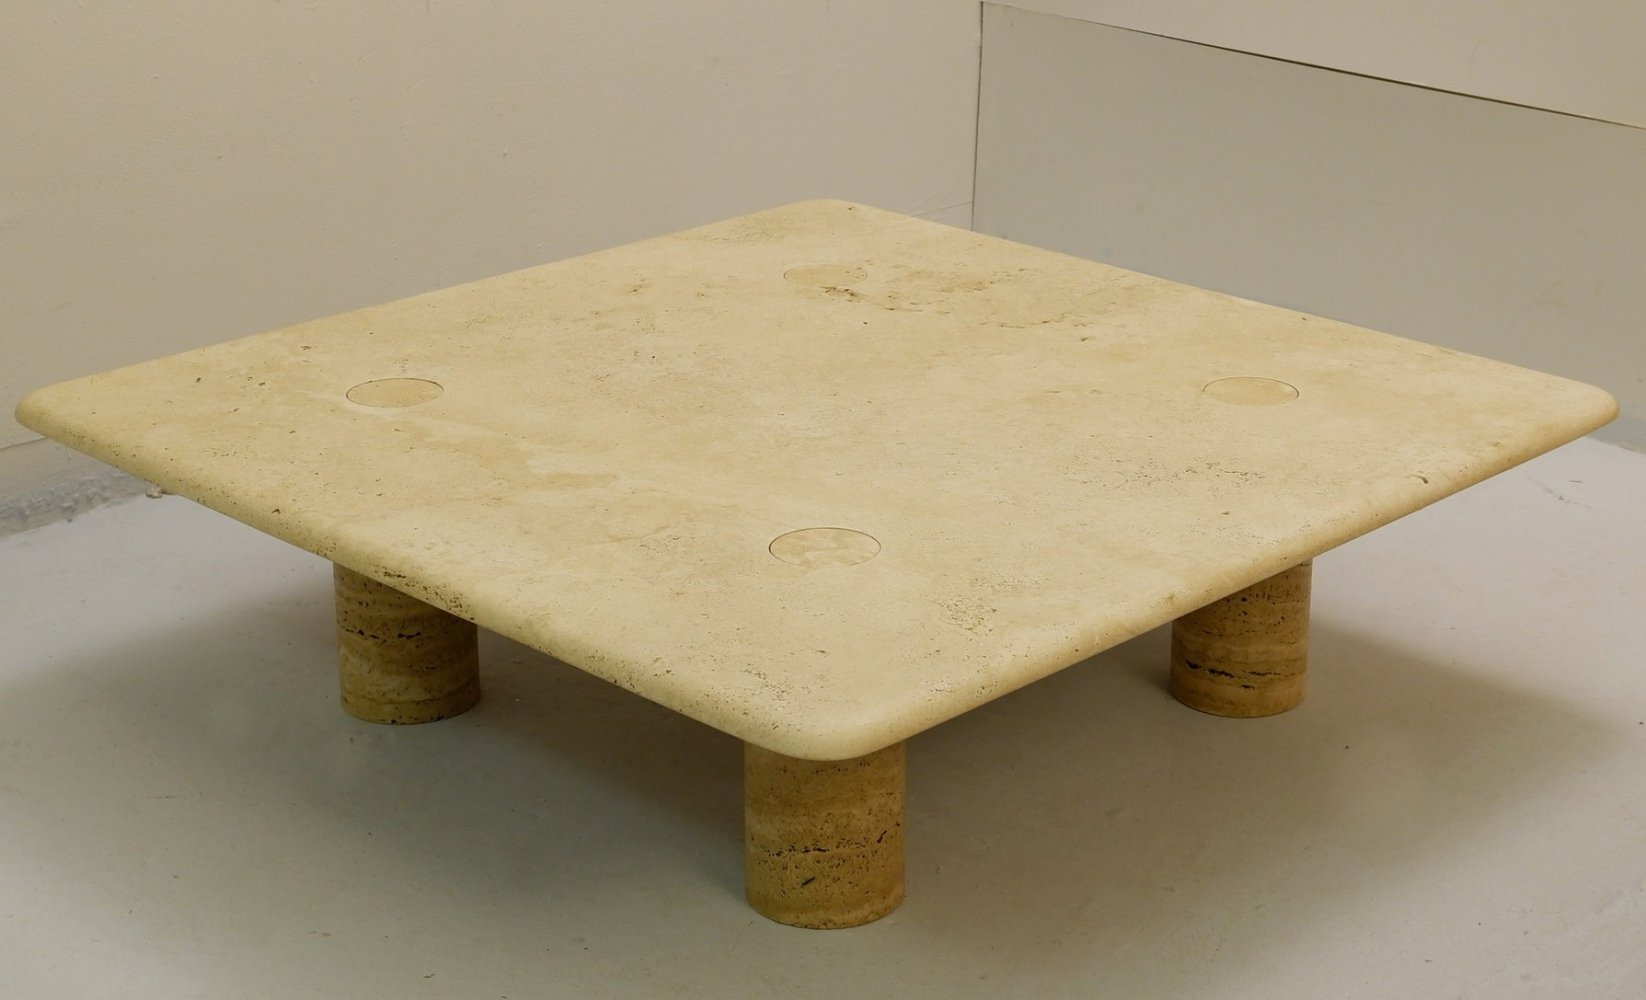 Small low coffee table in travertine by Angelo Mangiarotti, 1950s